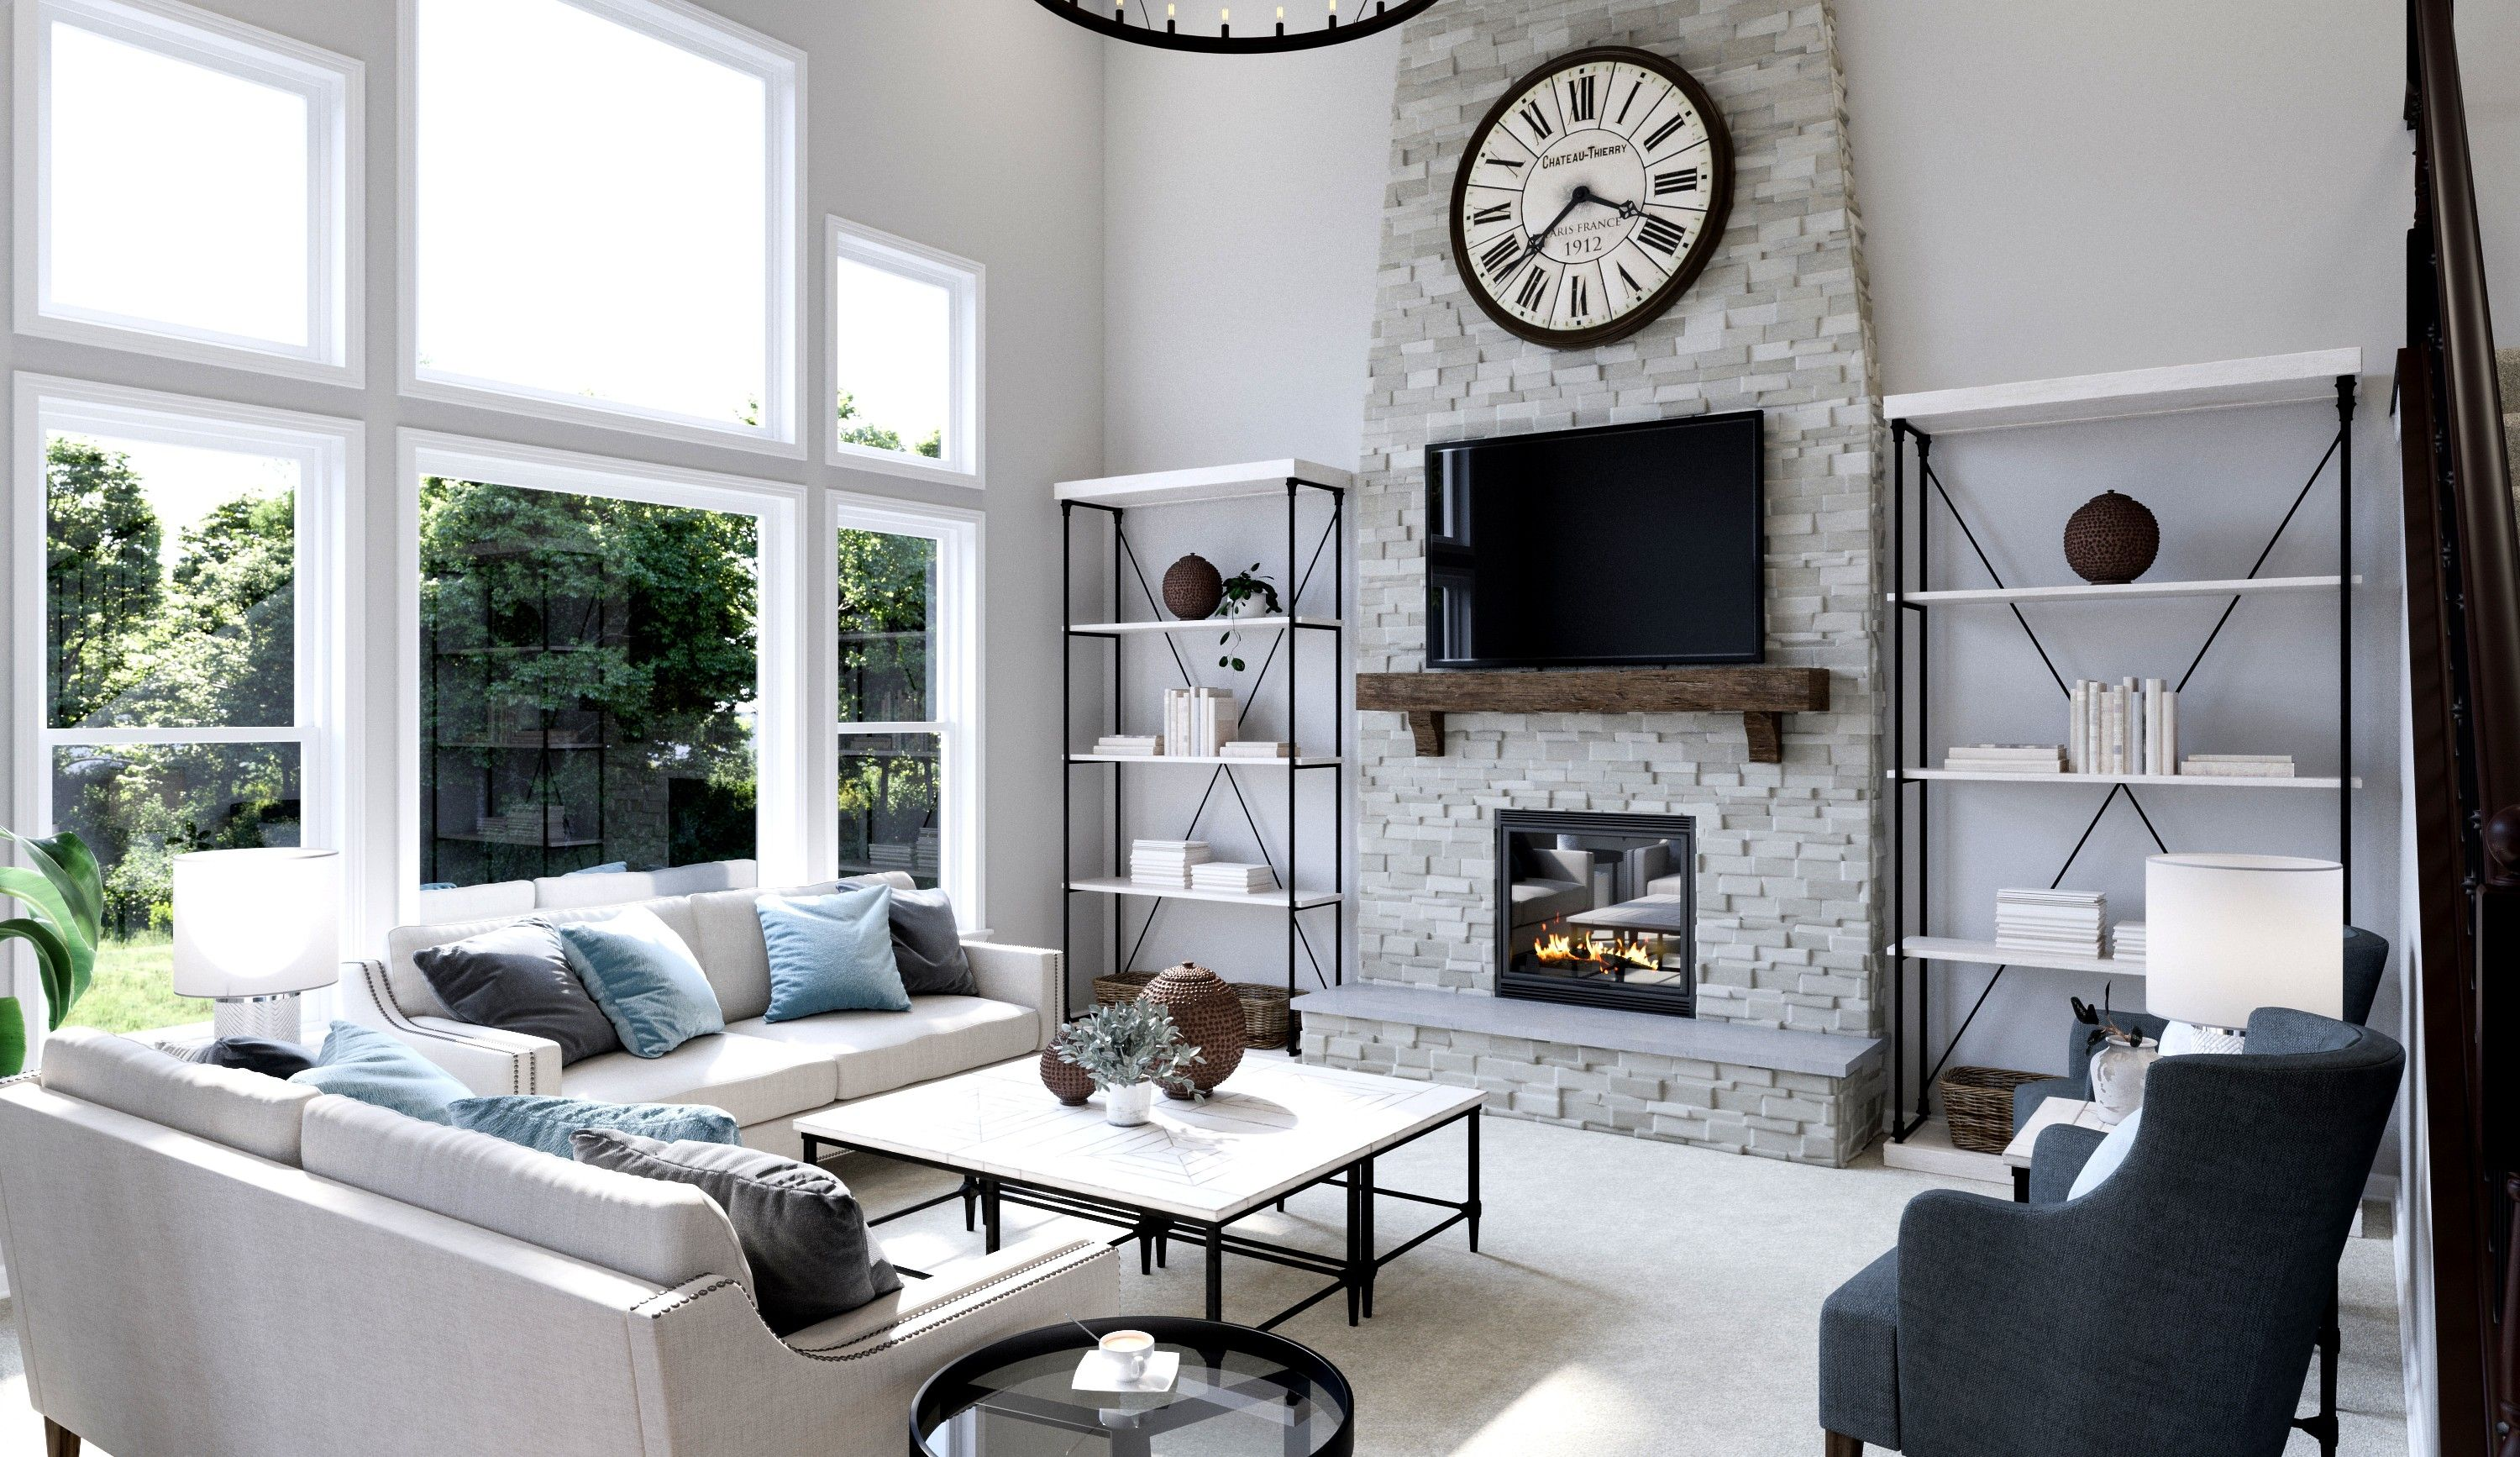 Two Story Great Room With A Grey Brick Fireplace Fischer Homes Avery Model Interior Visualization By Medialab 3d Solutions Home New Homes House Interior